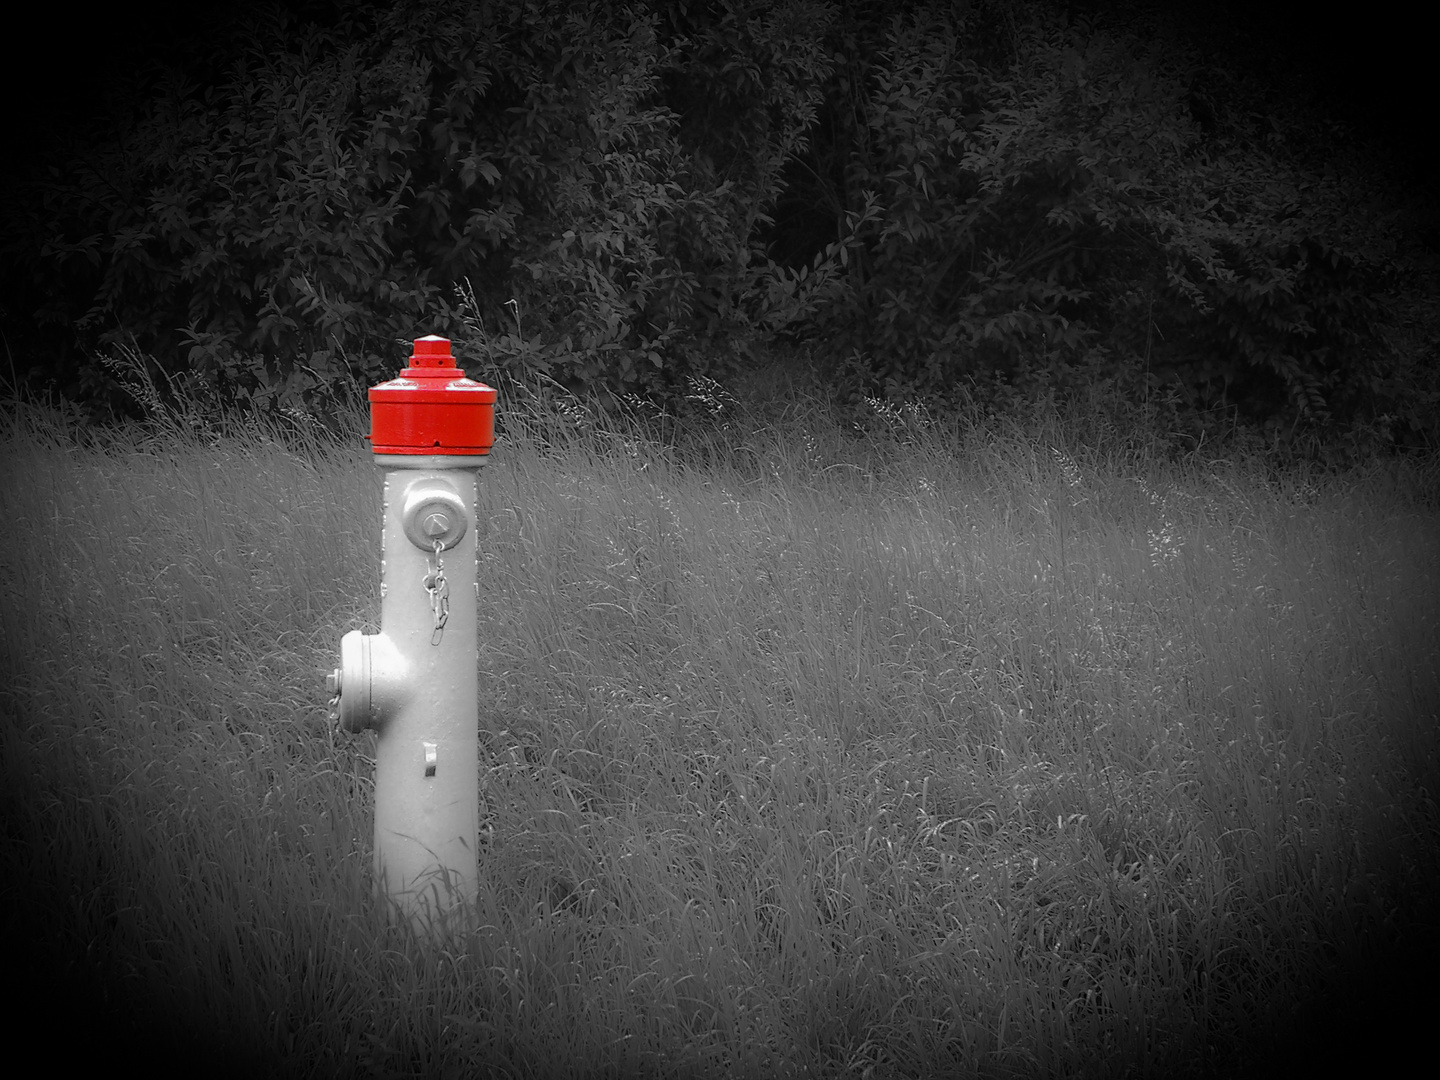 hydrant schwarz weiss rot foto bild monochrom bearbeitungs techniken digiart bilder auf. Black Bedroom Furniture Sets. Home Design Ideas